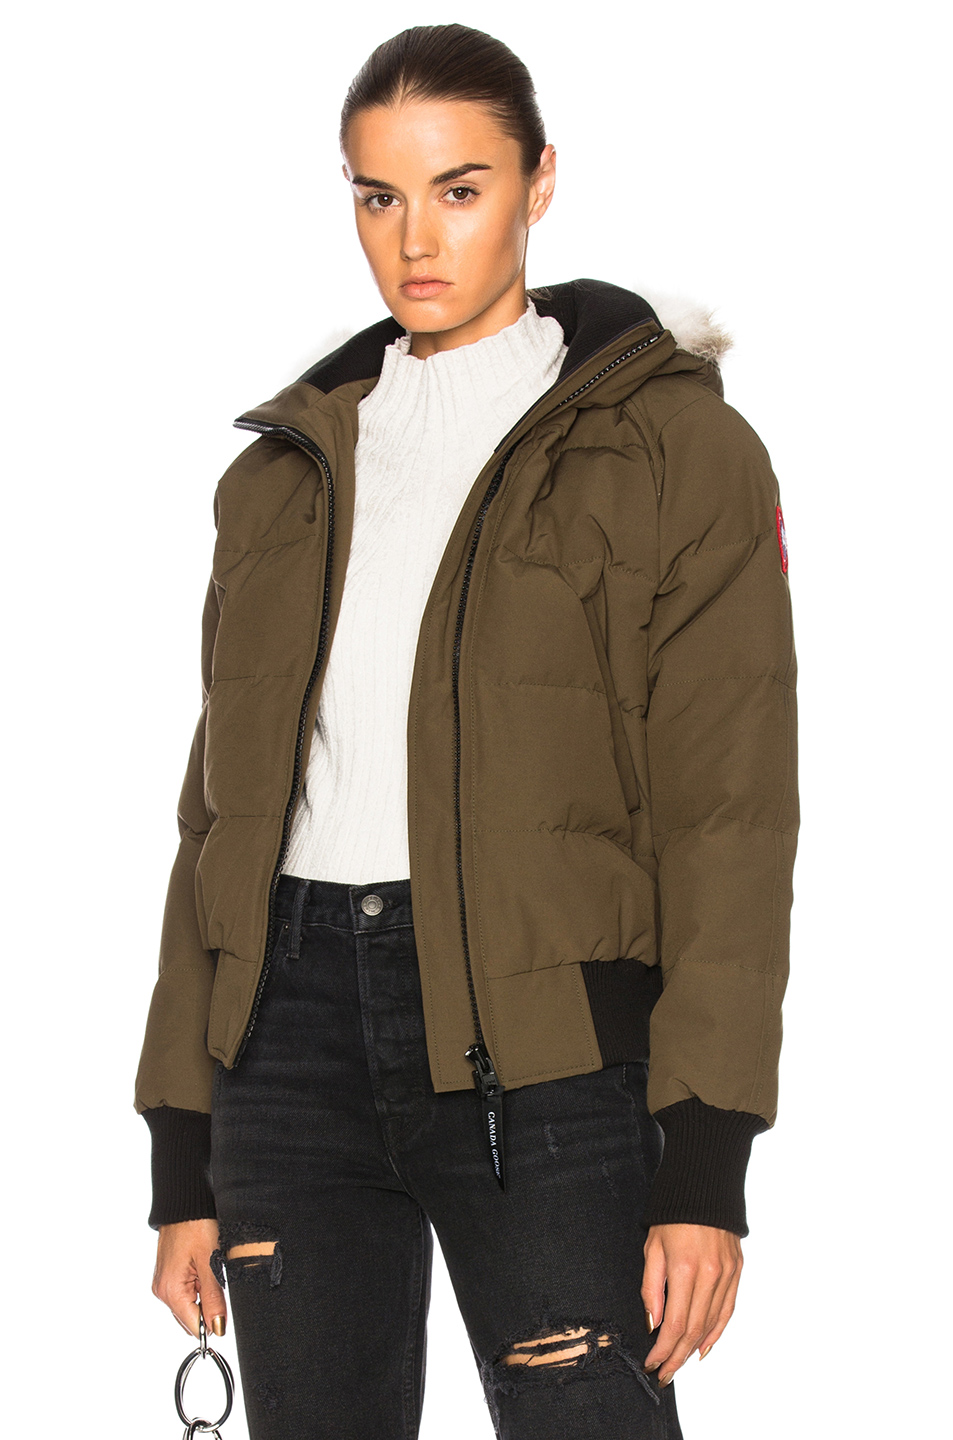 1a623079f387 Canada Goose Green Down Savona Jacket In Military Green